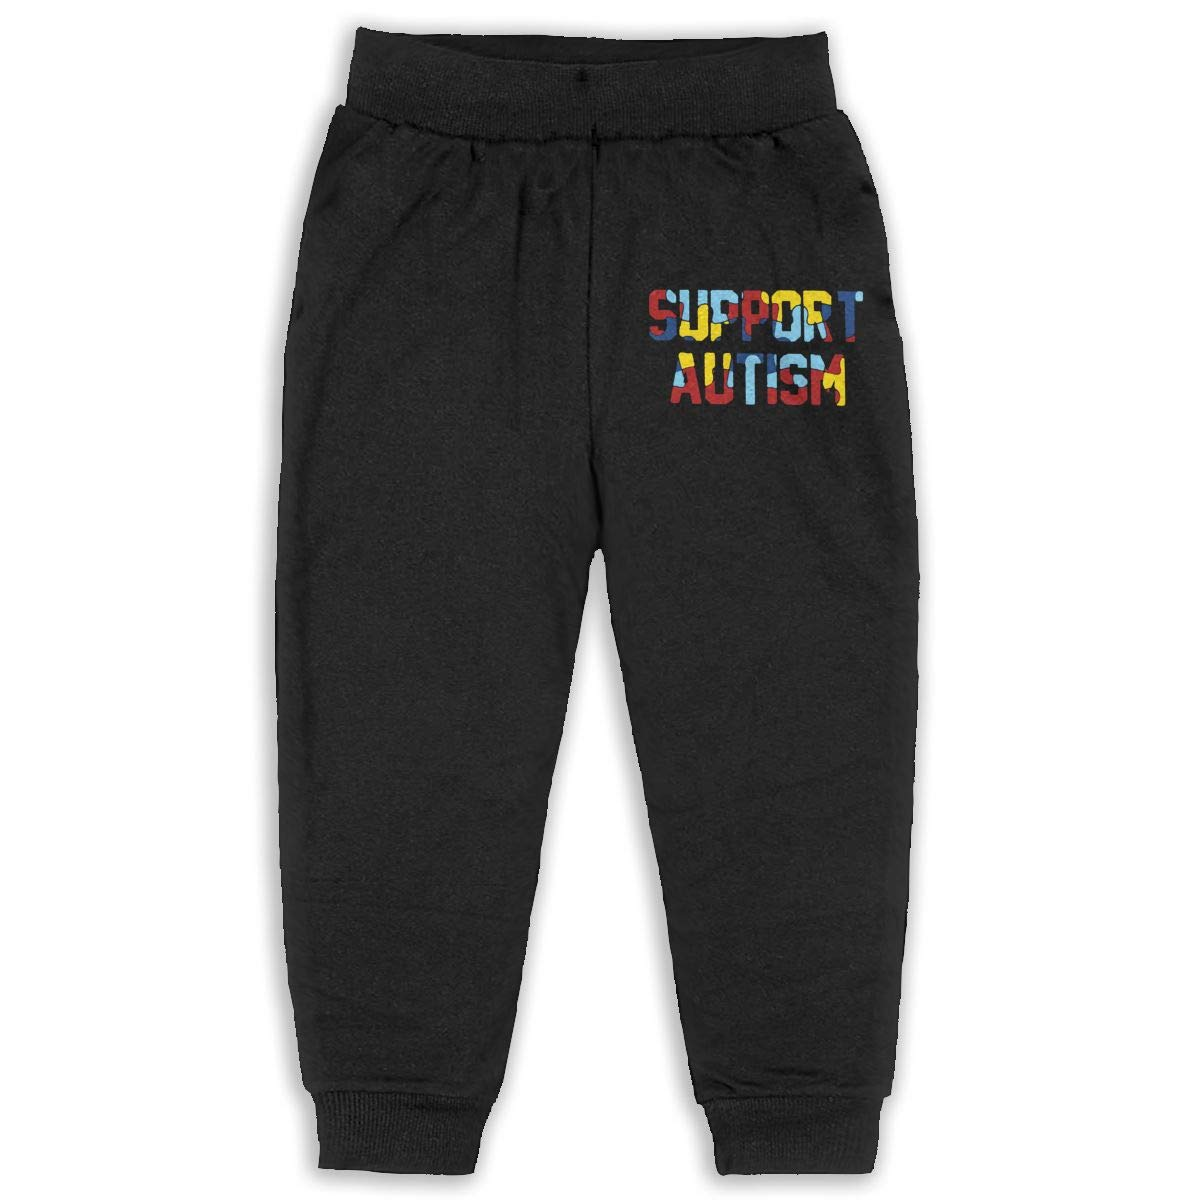 Classic Baby Boy Elastic Trousers Support Autism Unisex Kid Toddler Sweatpants